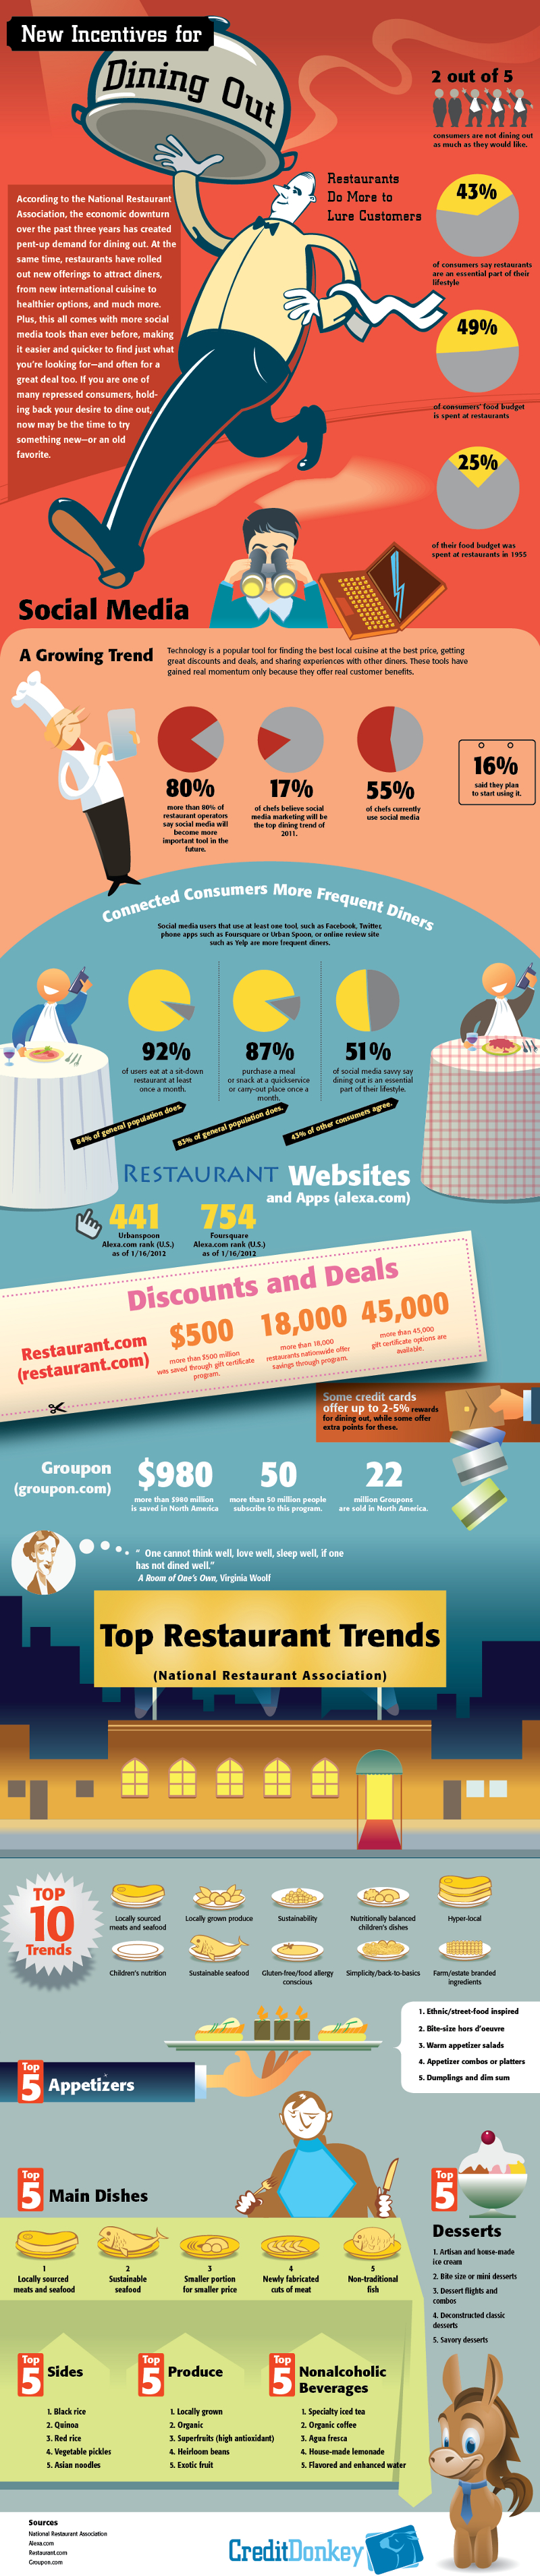 Restaurant Trends and Benefits of Dining Out